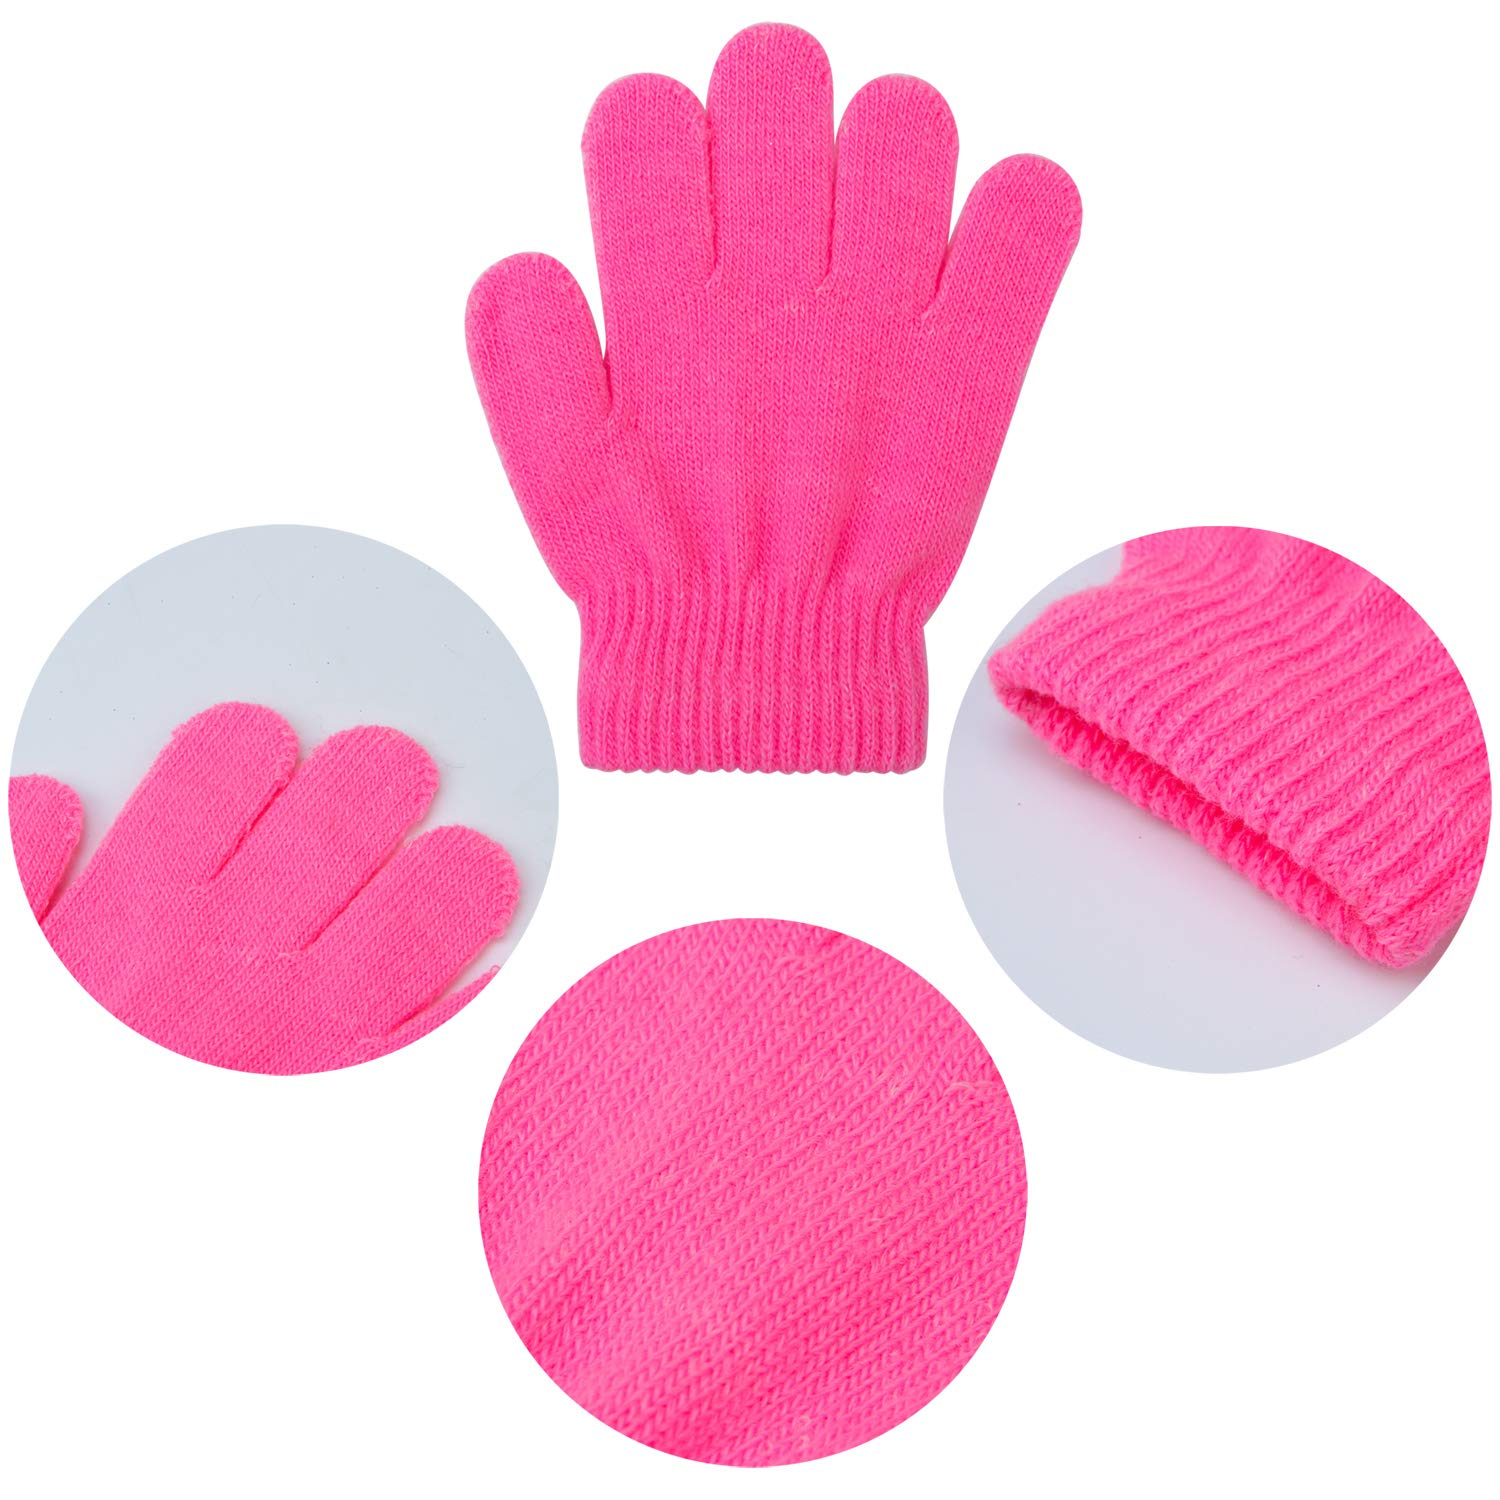 Cooraby 12 Pairs Kids Magic Gloves Winter Warm Knitted Gloves Stretch Full Finger Gloves